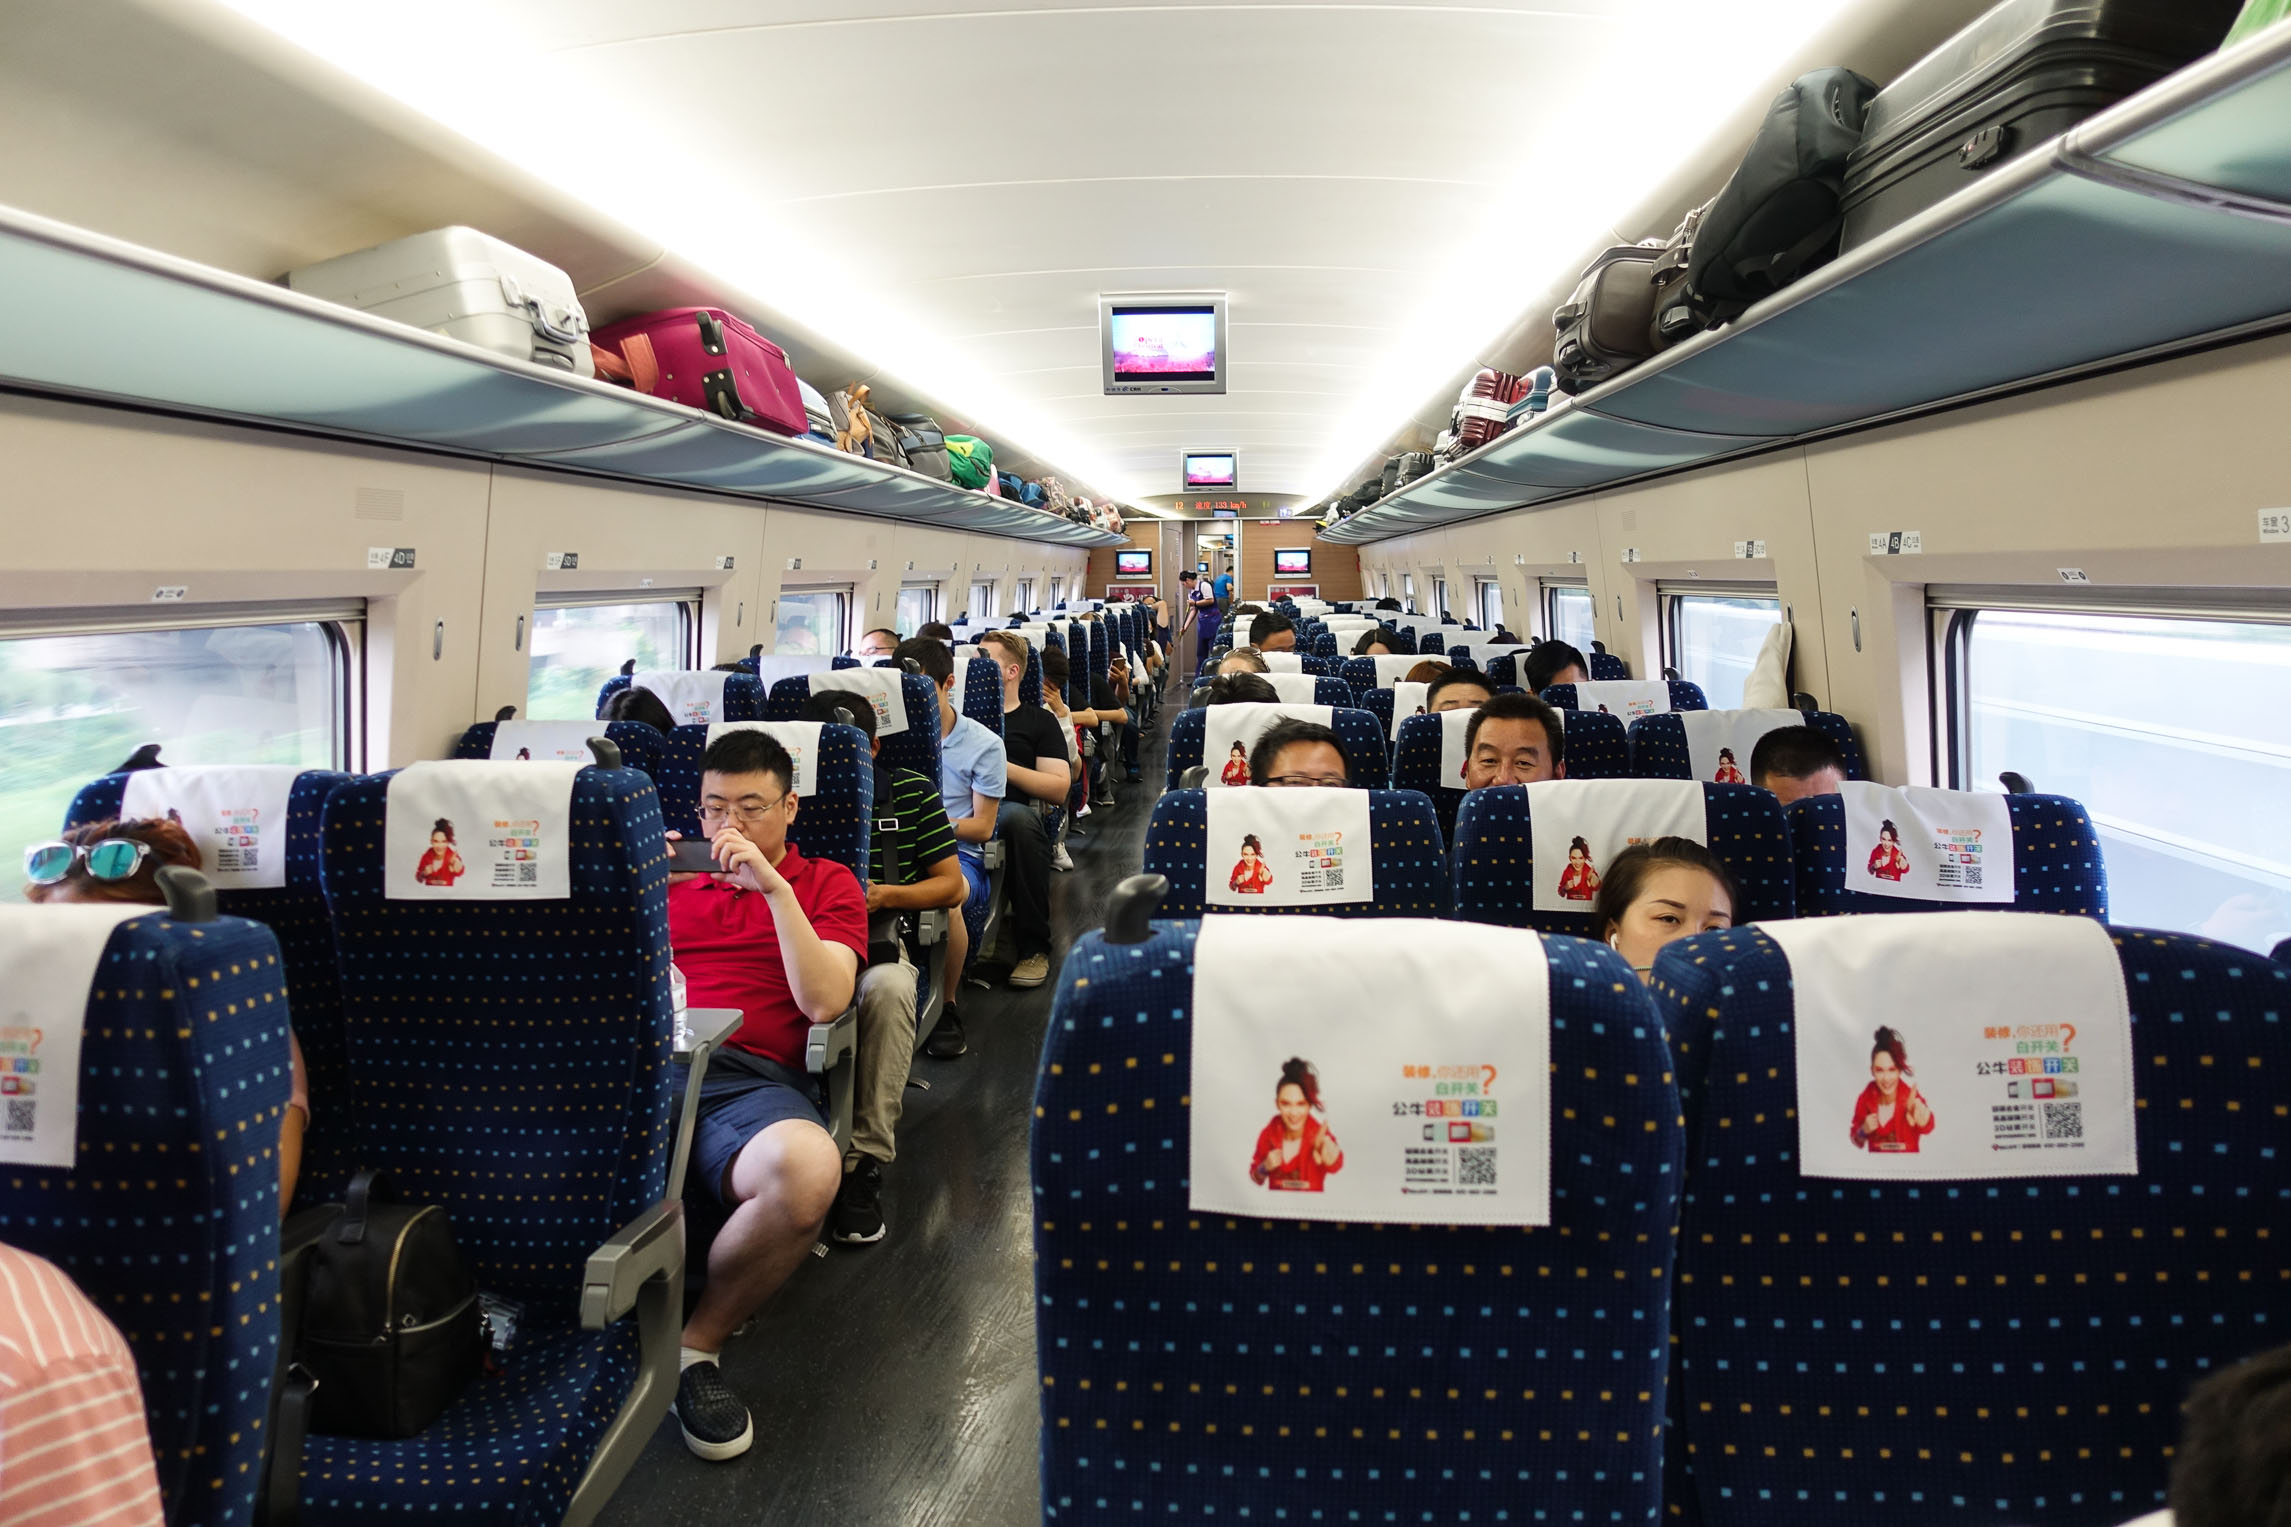 Xi'an Chinese bullet train second class